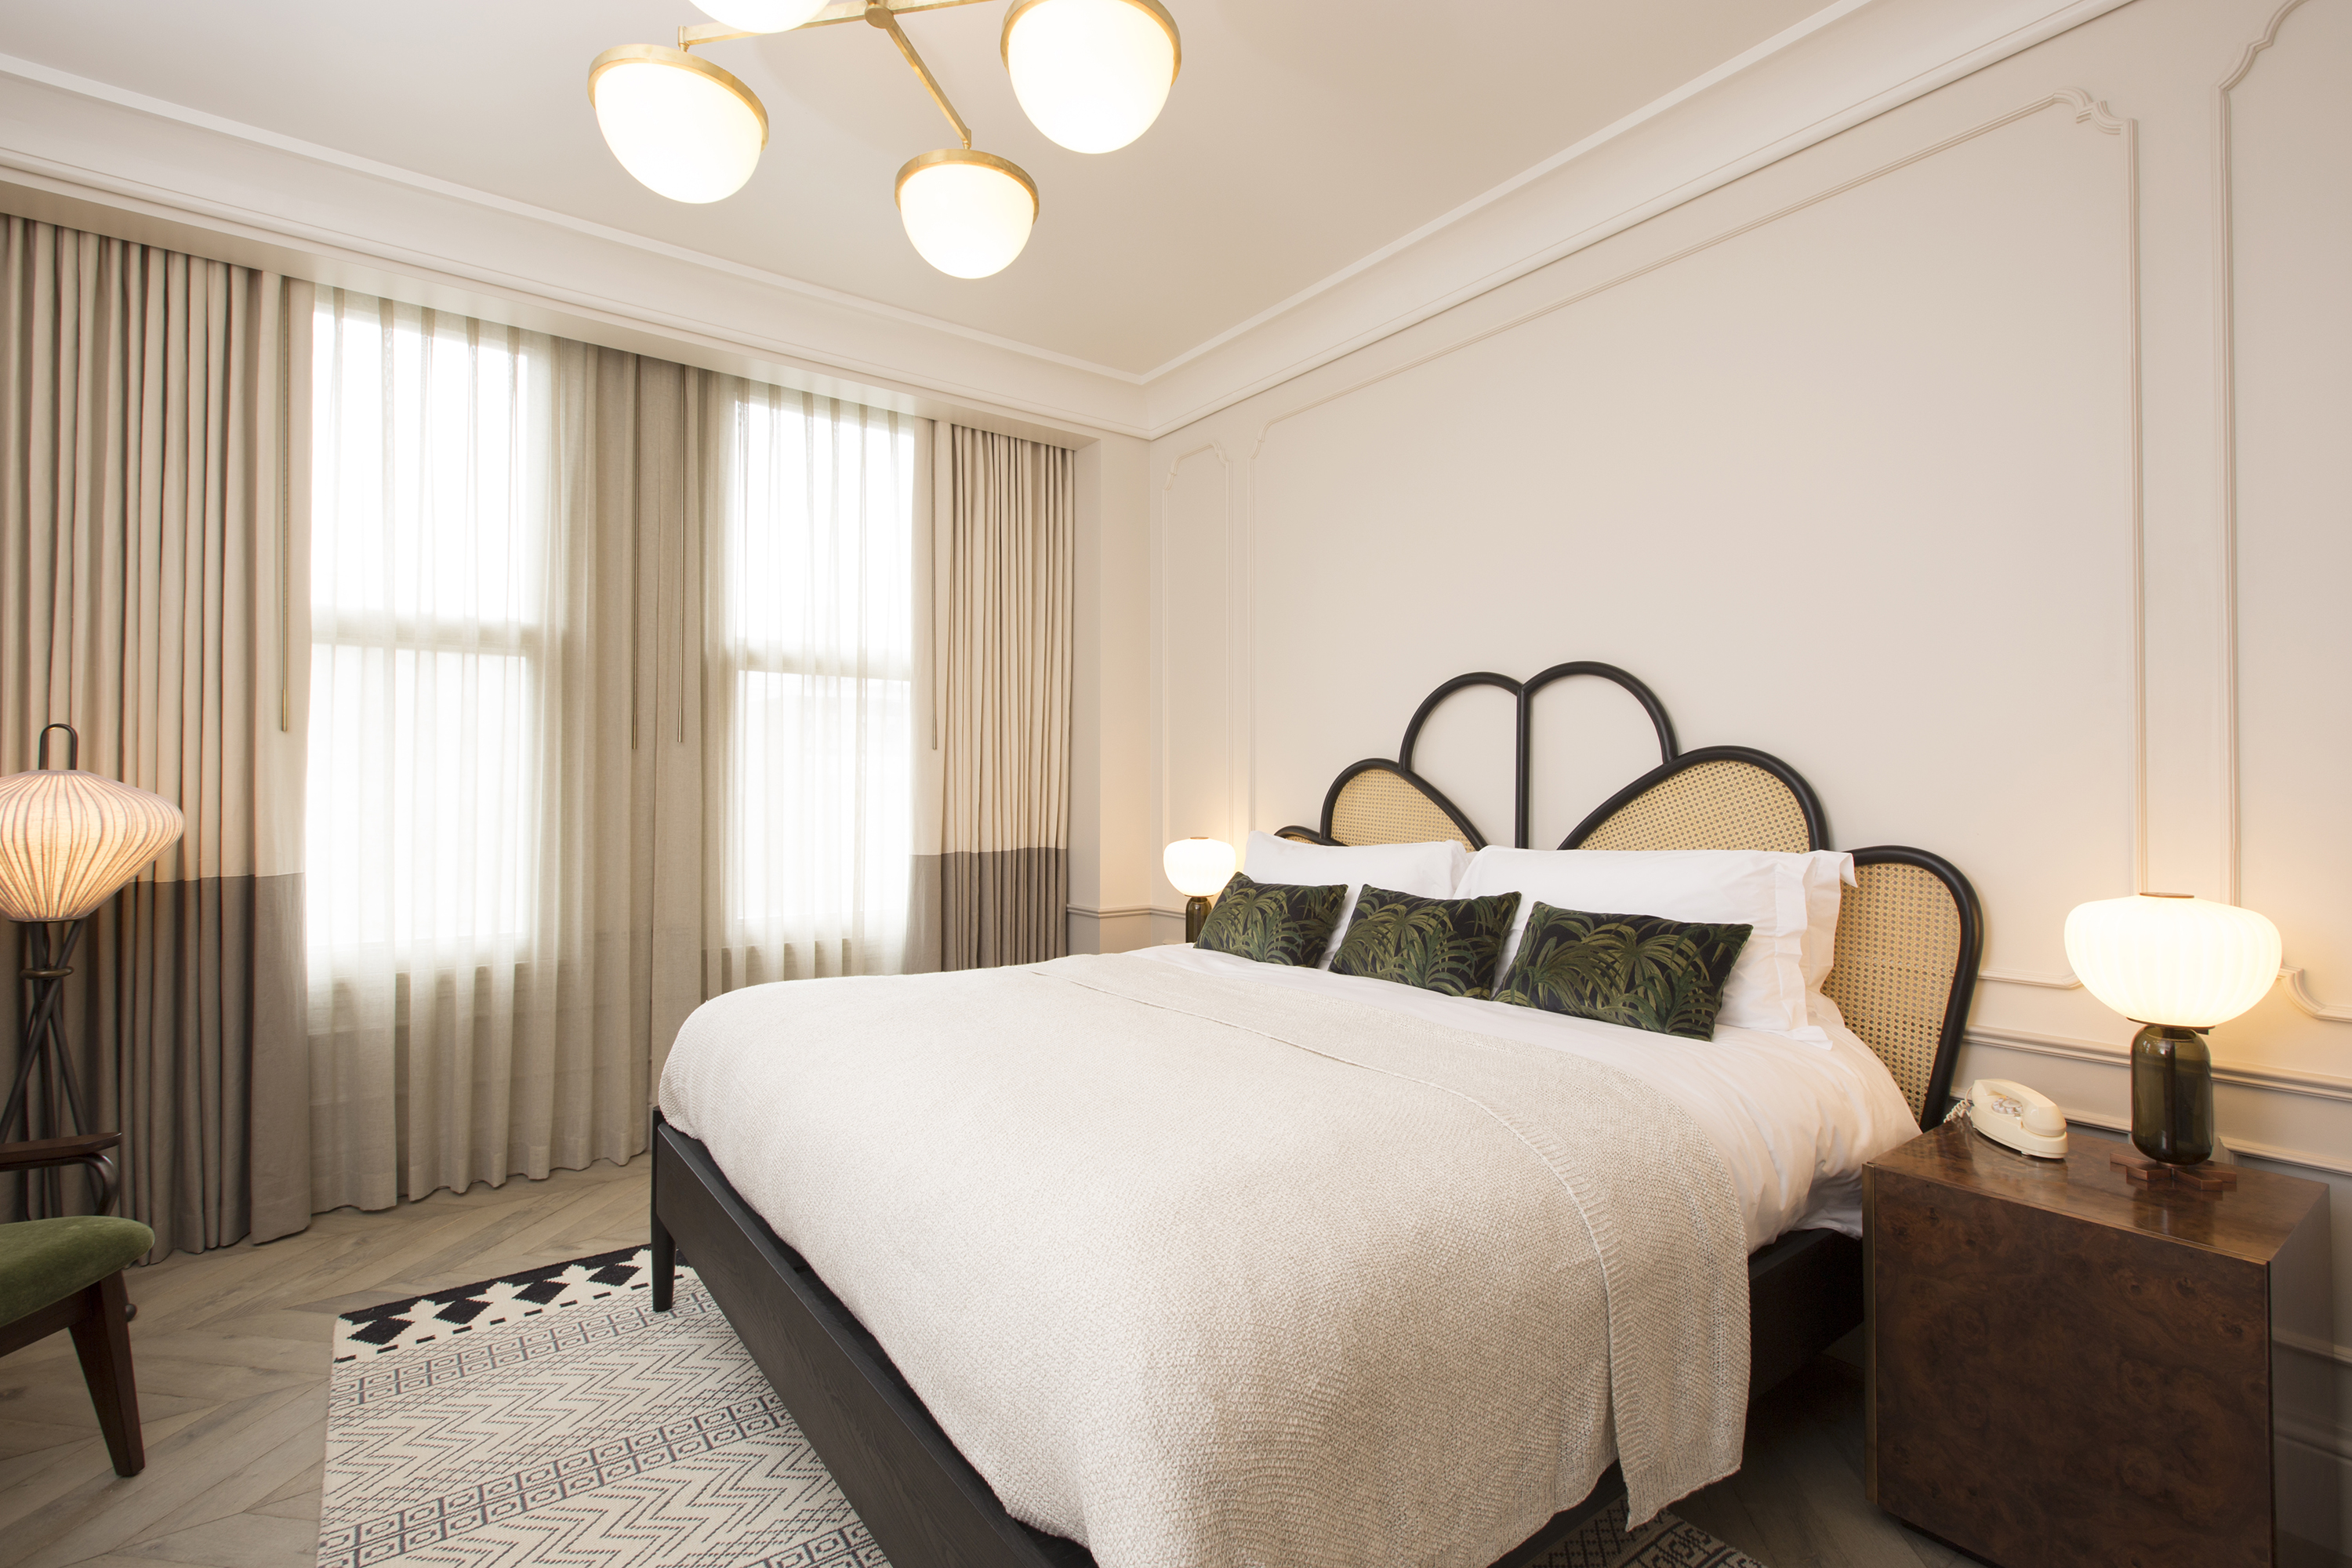 A photo of a bright, white bedroom with crown moldings, a queen-size bed with headboard, and chandelier-style lighting fixture with white glass globes.